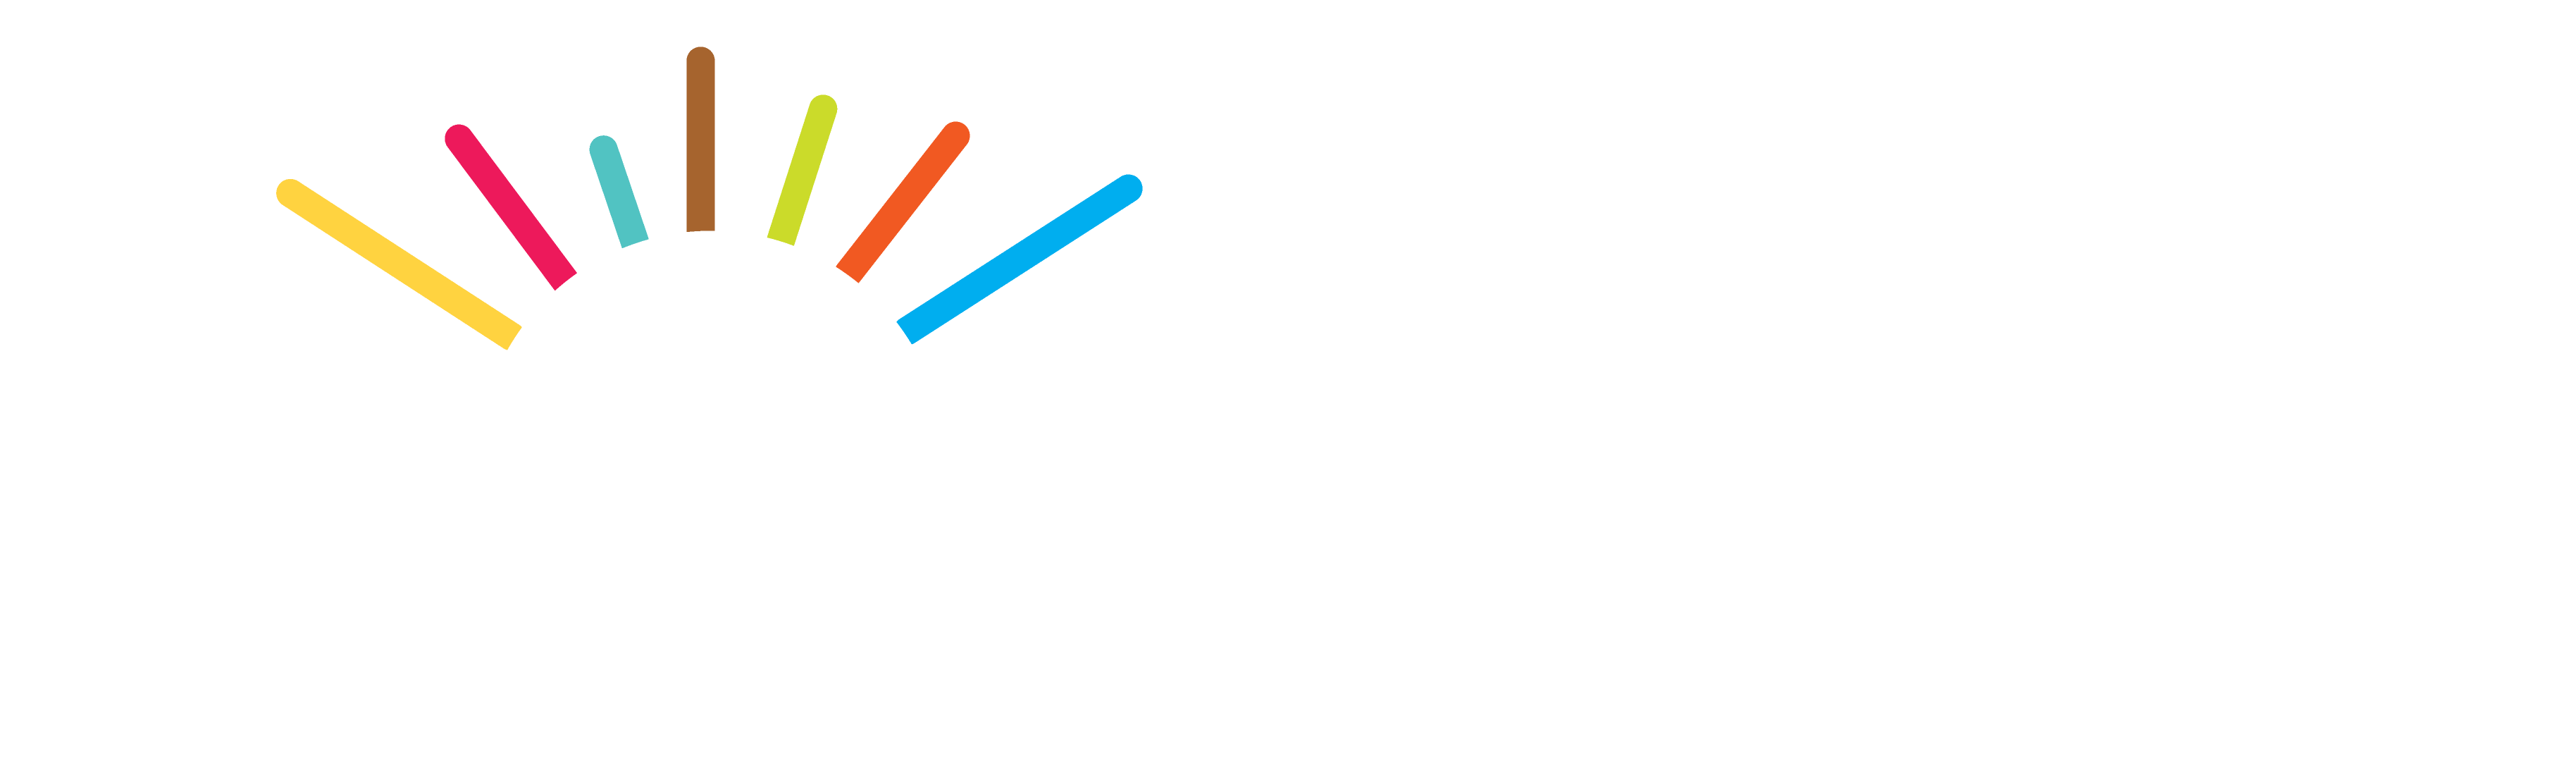 EC Hispanic Media logo